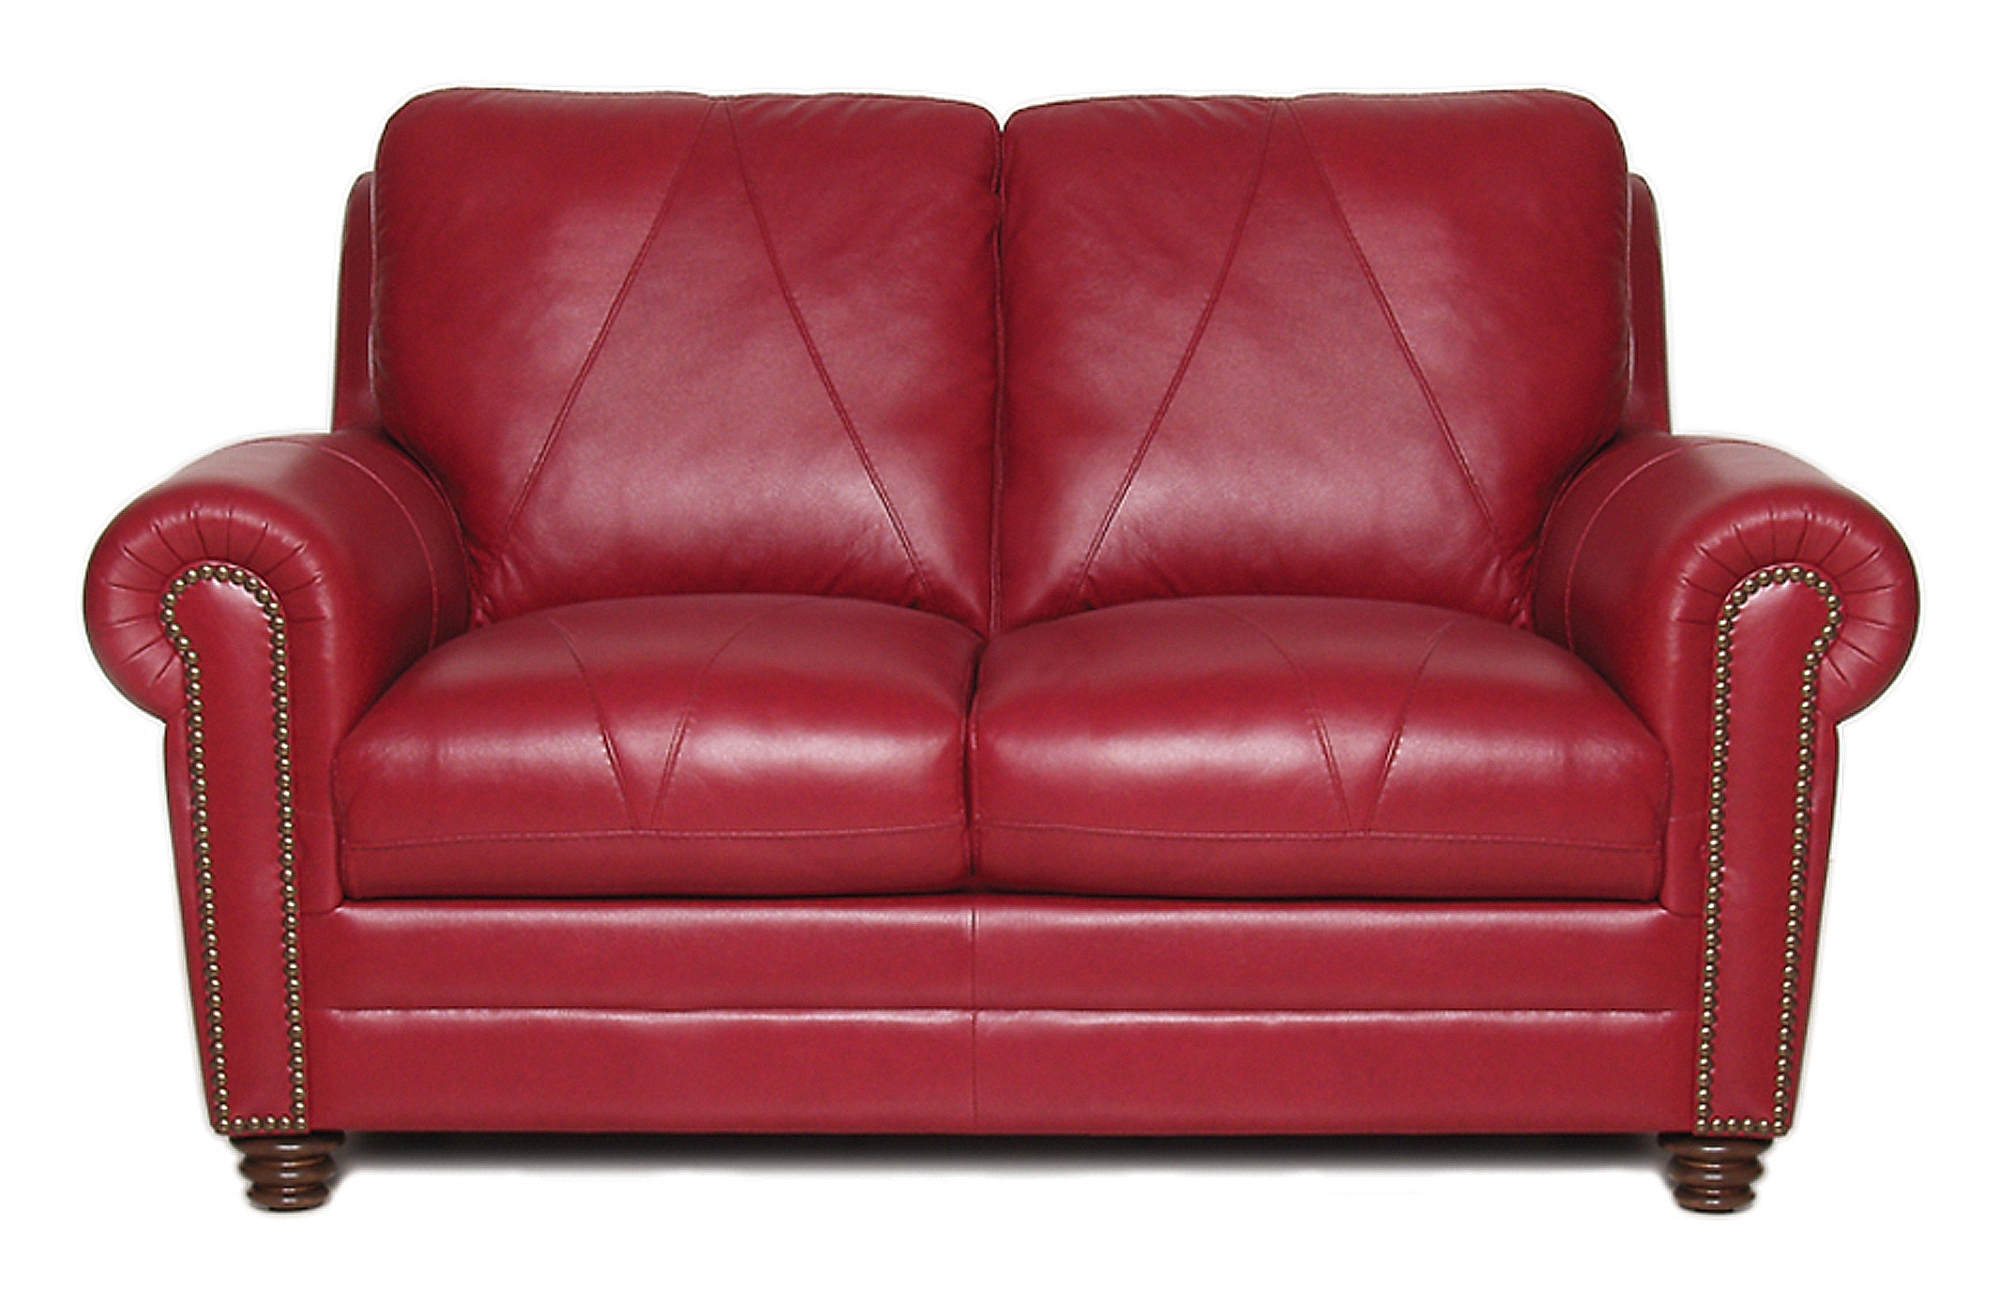 Weston Collection – Luke Leather Furniture Throughout Well Known Red Sofa Chairs (View 15 of 15)